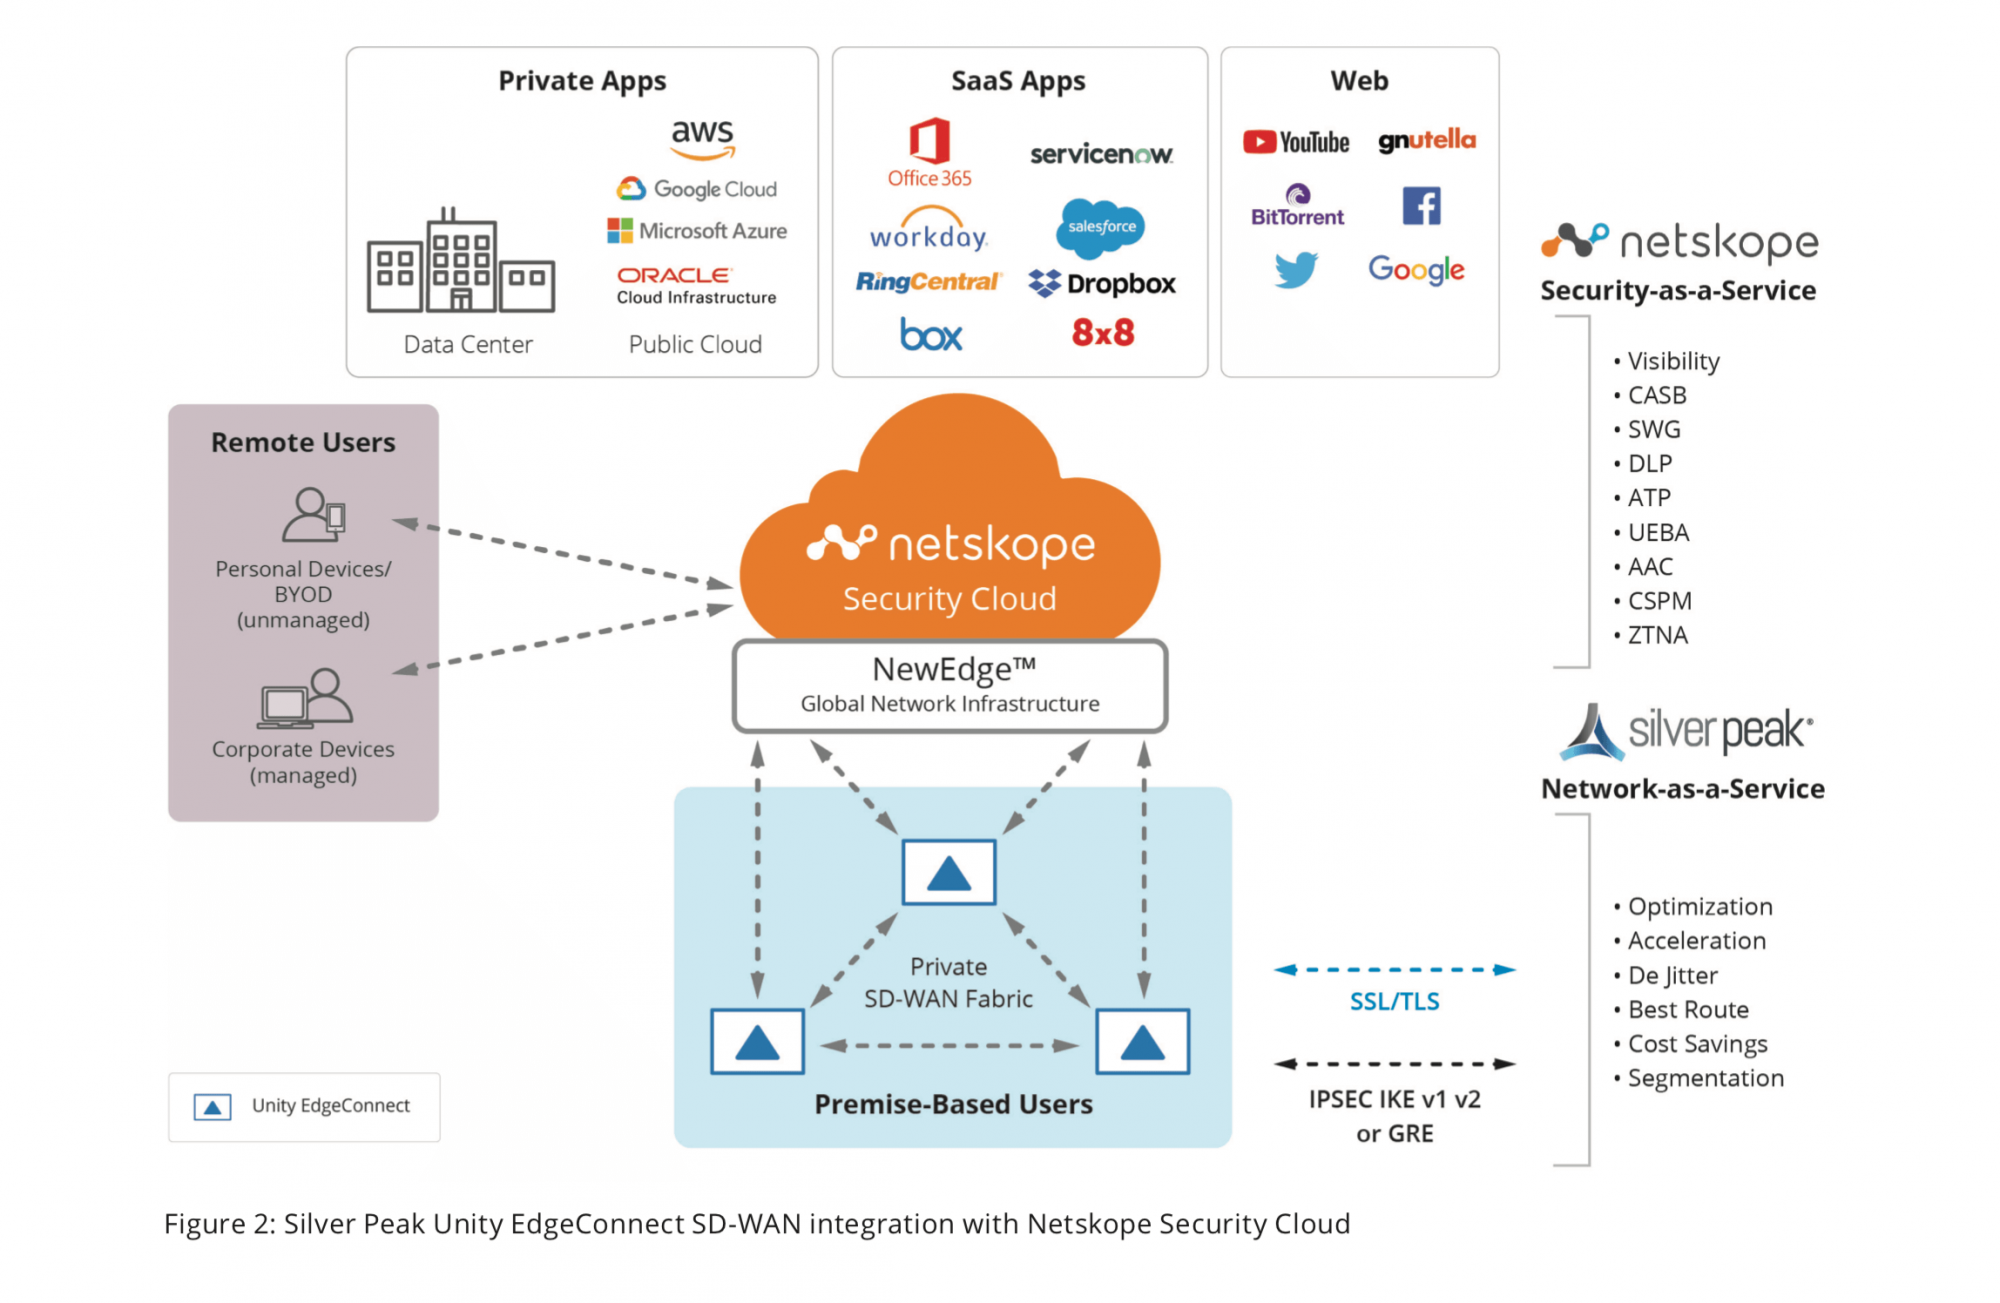 Figure 2: Silver Peak Unity EdgeConnect SD-WAN integration with Netskope Security Cloud